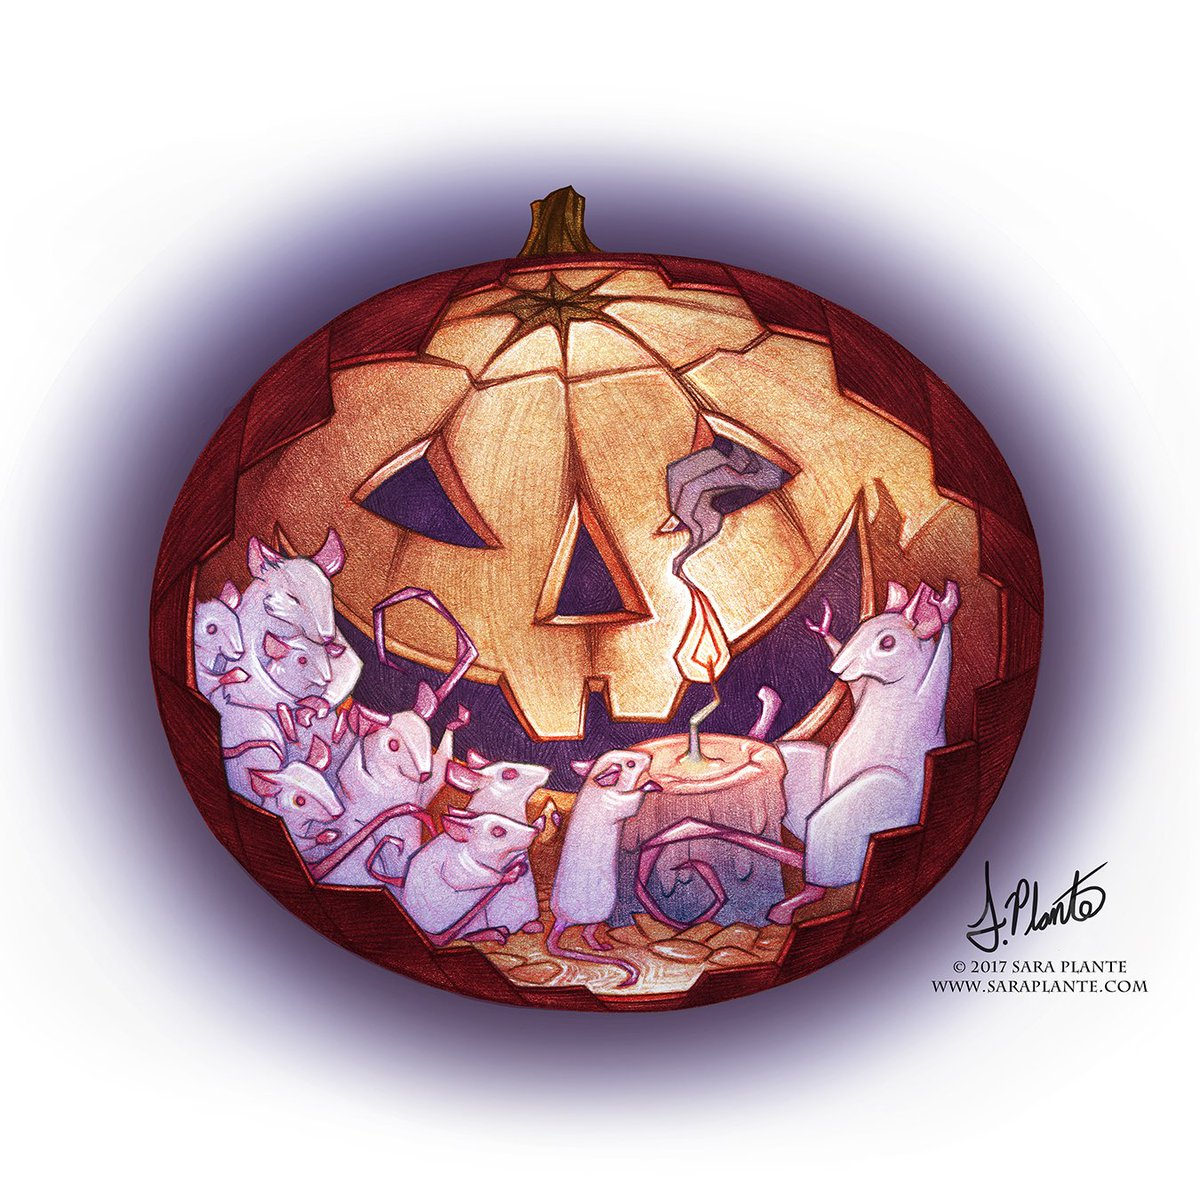 Sara Plante On Twitter Happy Halloween Carved Tales A Design For